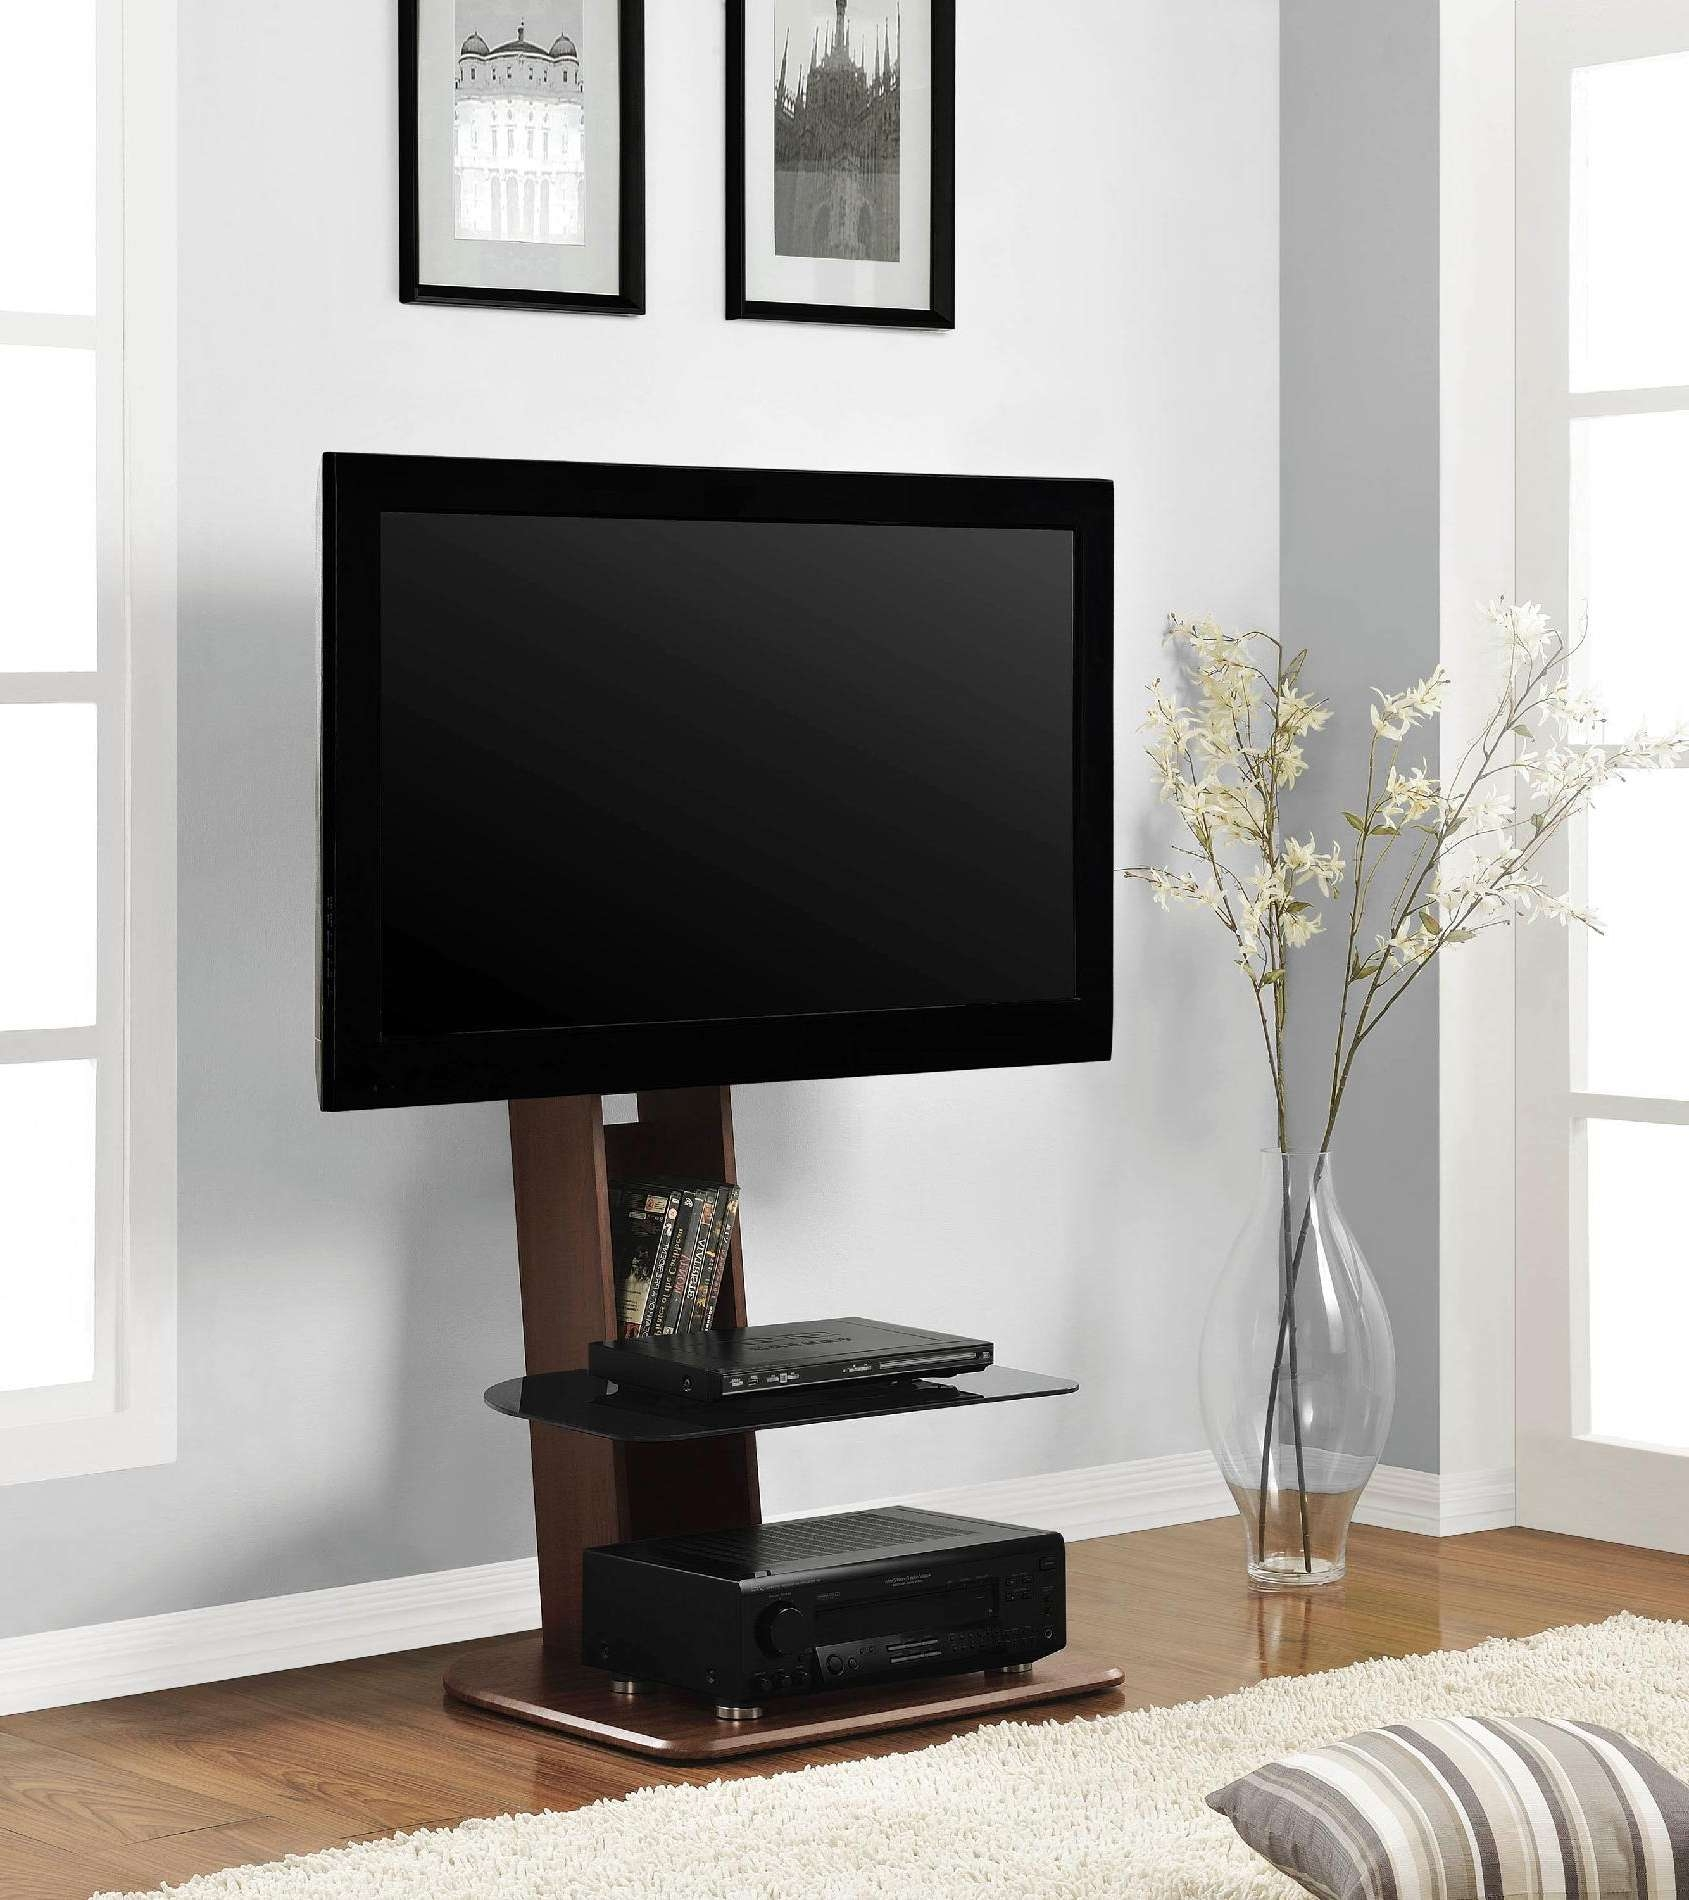 Tv Stands Corner Stand Inch Flat Screen Brandnew Design Pictures Throughout Corner Tv Stands For 60 Inch Flat Screens (View 15 of 15)